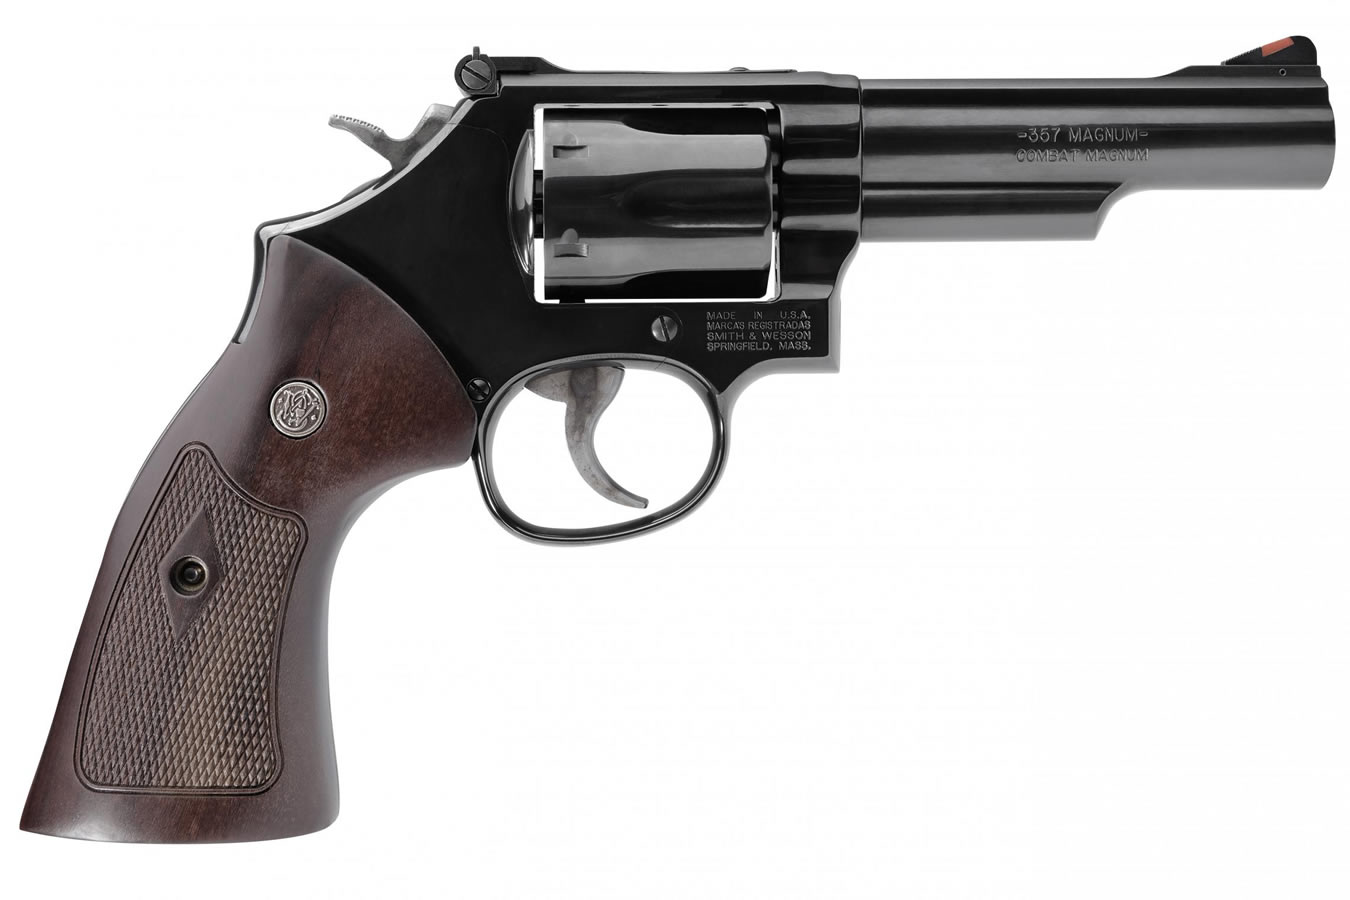 smith wesson model 19 classic 357 magnum blued revolver